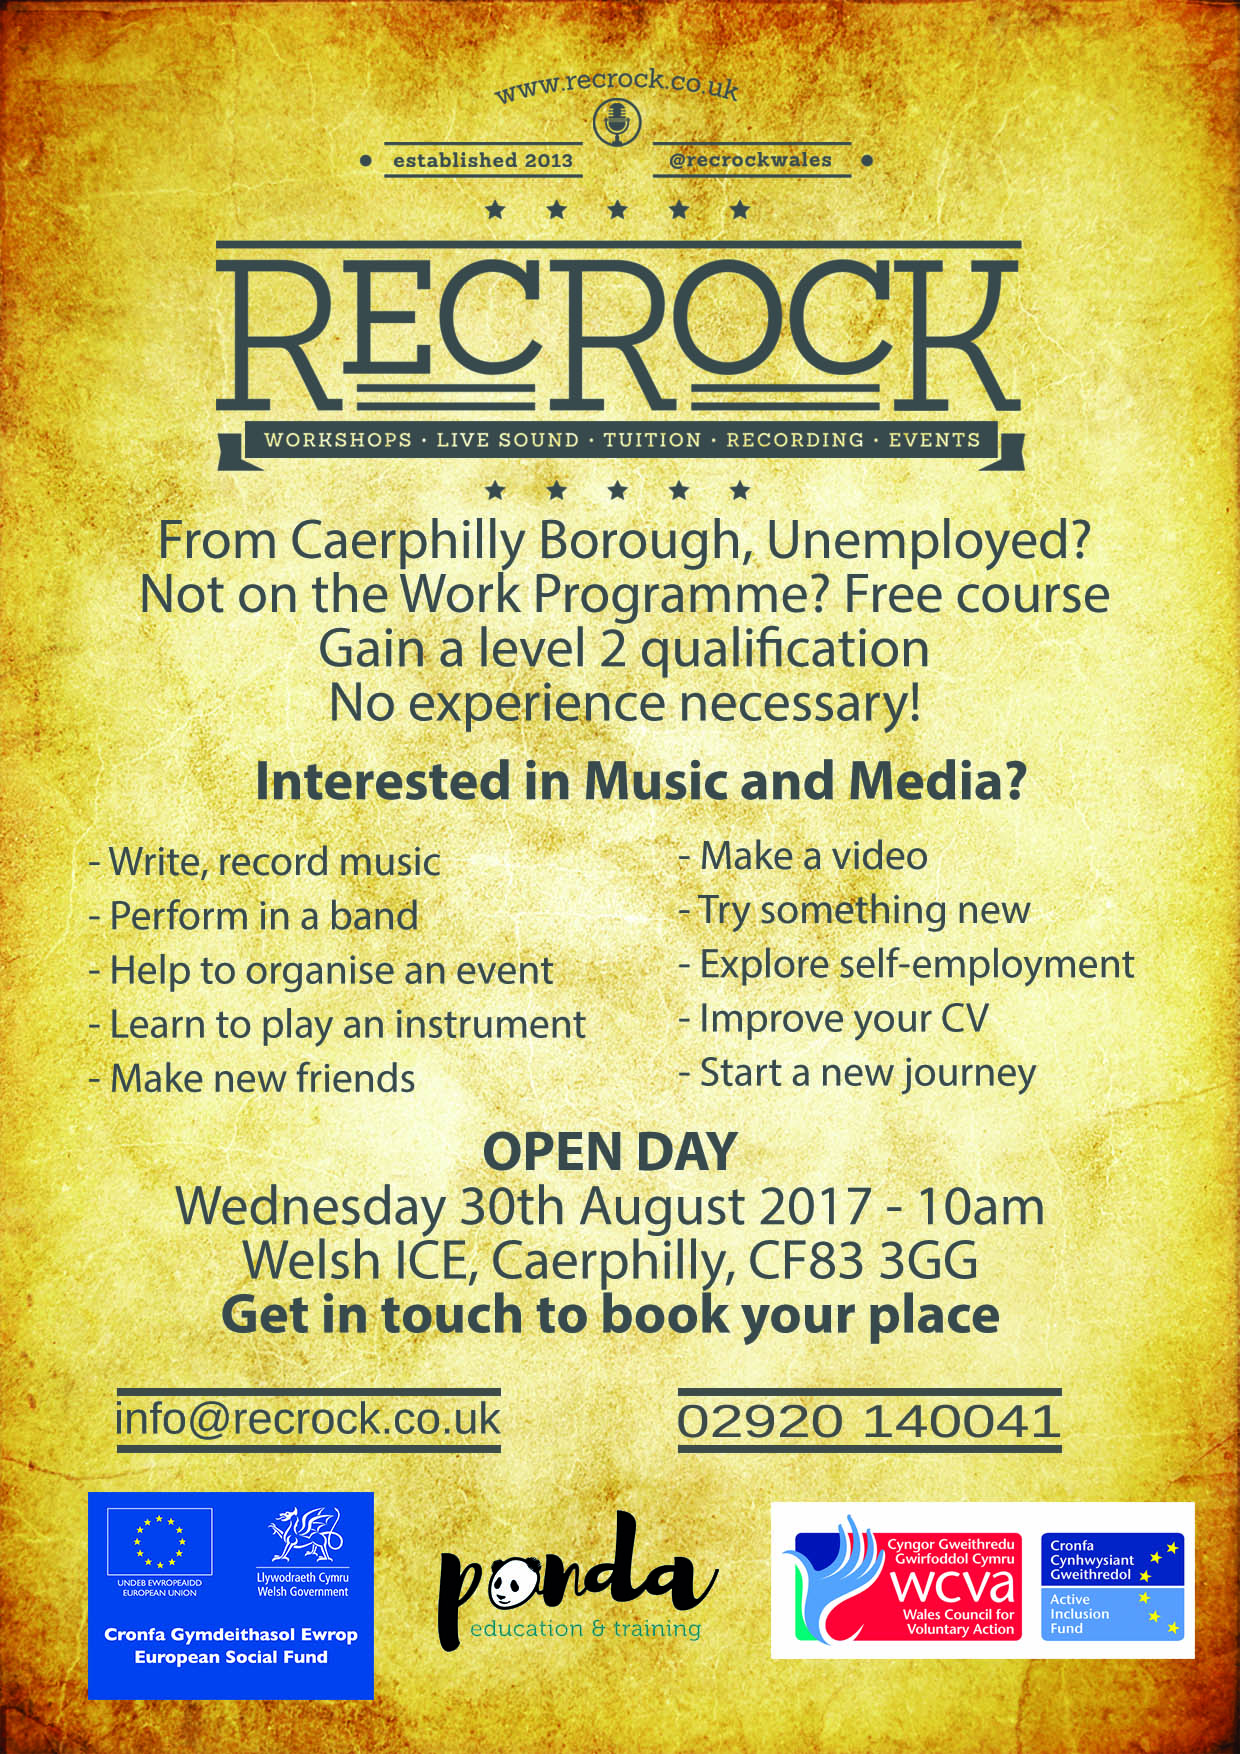 RecRock open day, 30th August 2017 - 10am - Book your place